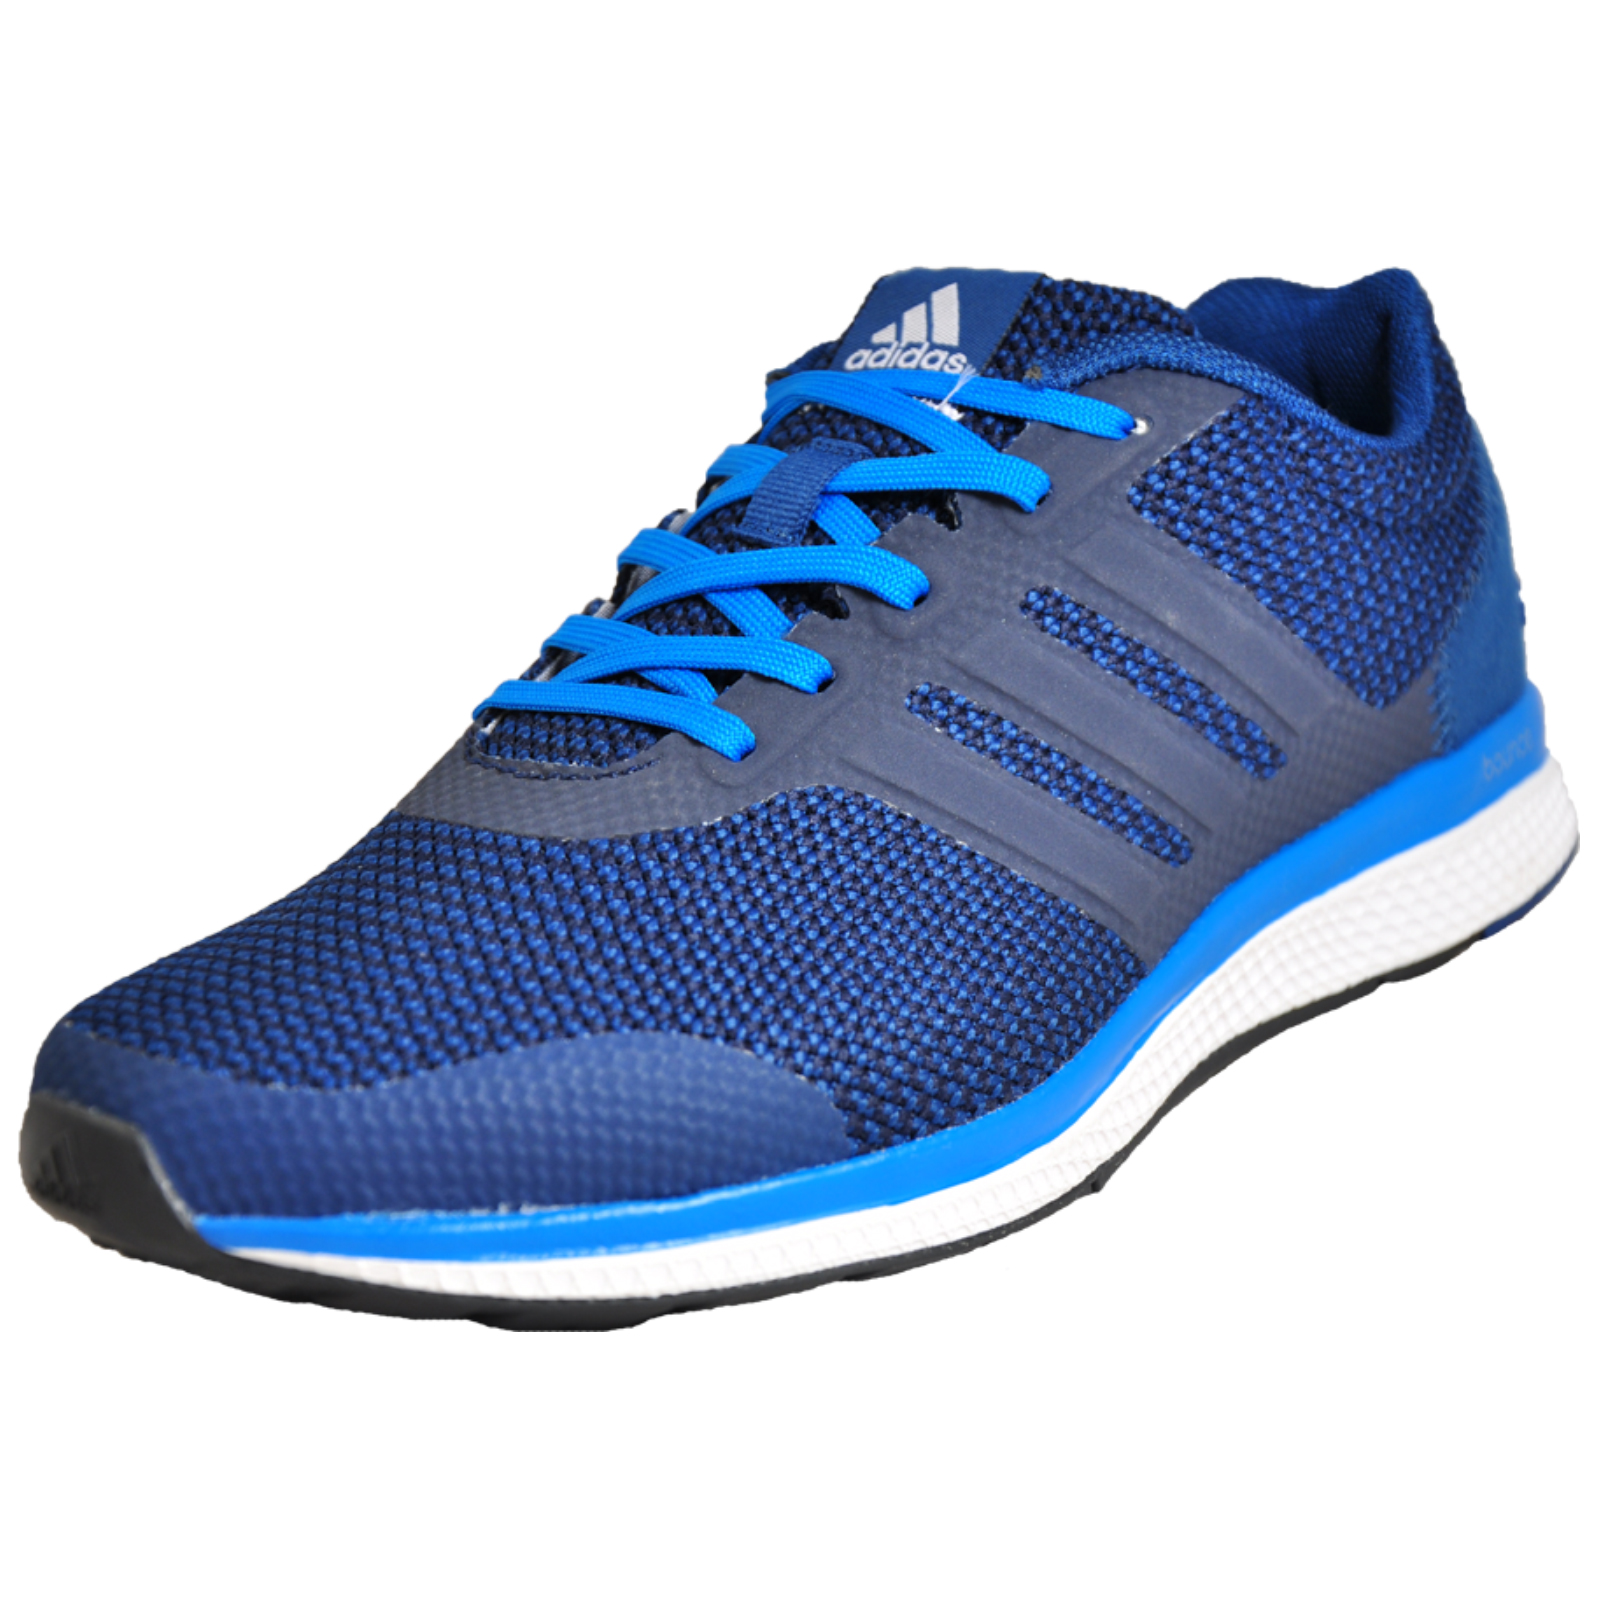 separation shoes 7e0bb 8baf7 Details about Adidas Lightster Bounce Mens Running Shoes Fitness Gym  Trainers Blue